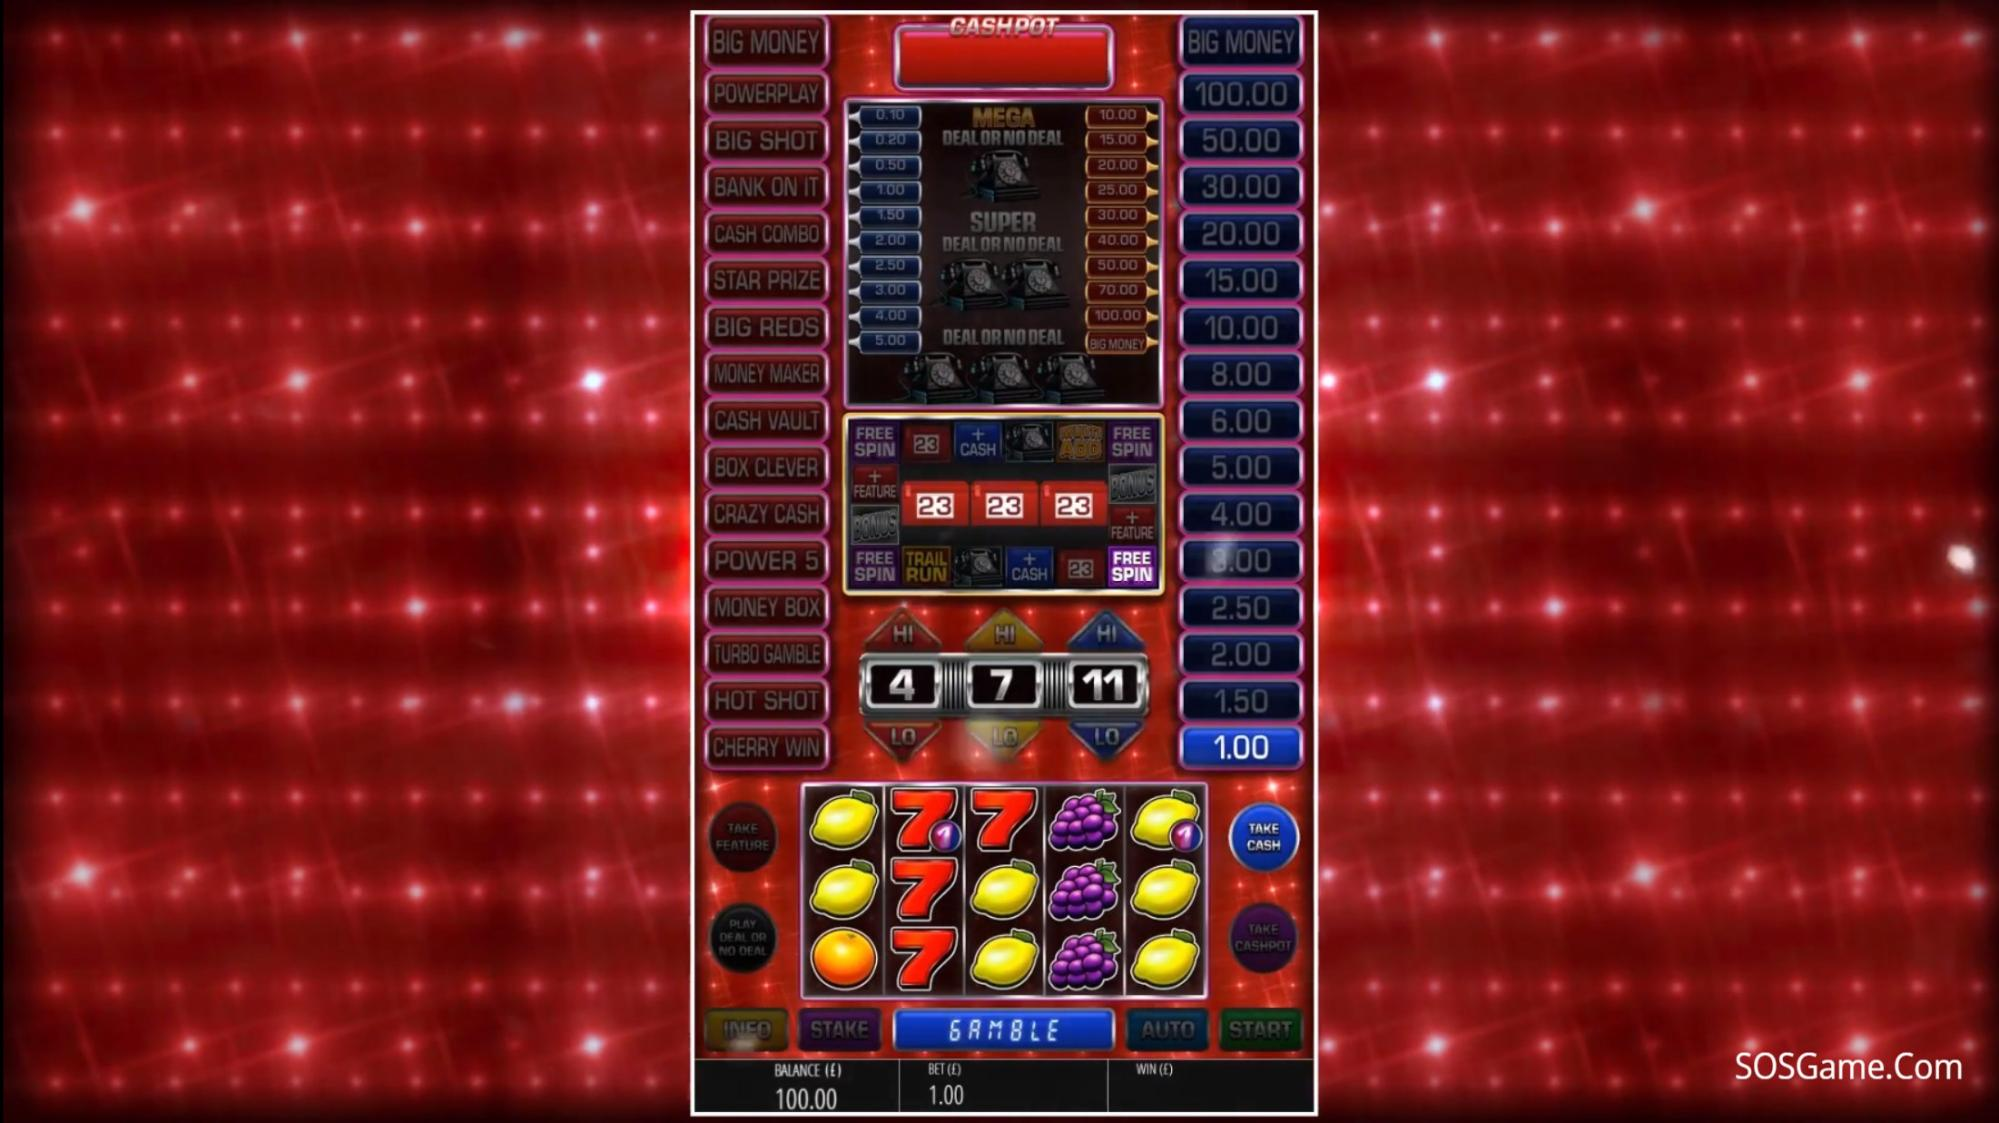 Deal or No Deal: Go All the Way Video Slot